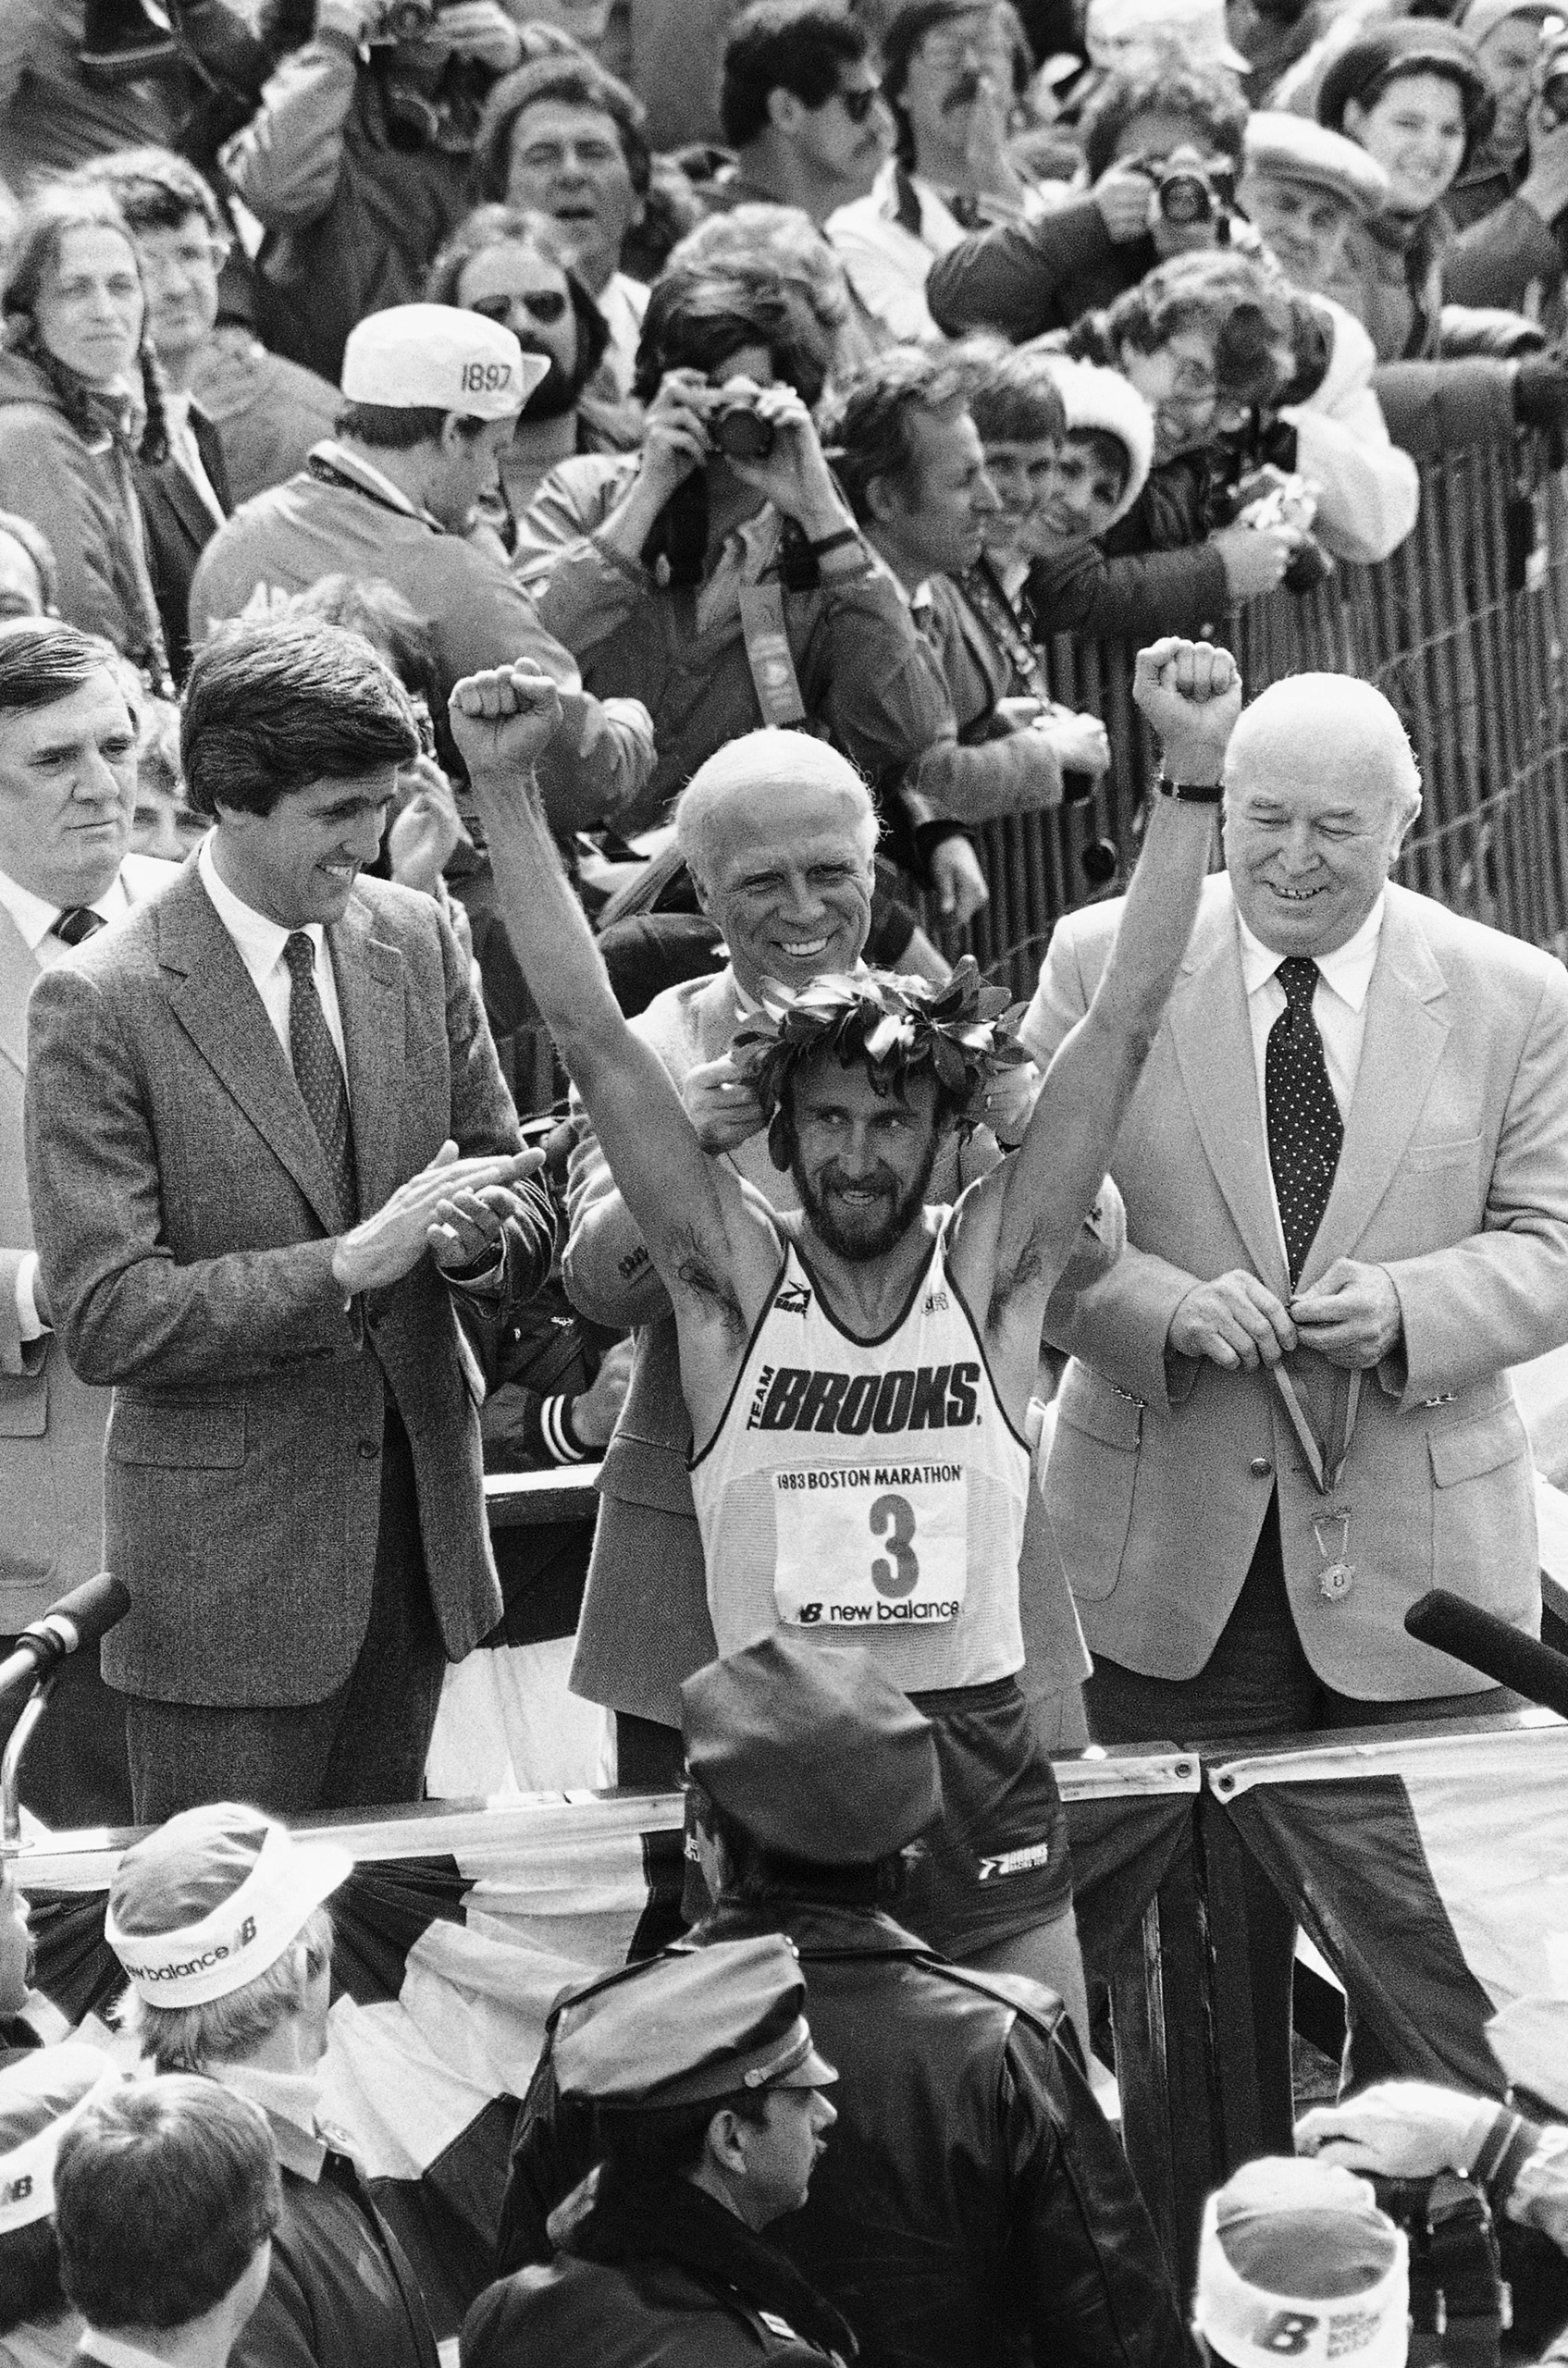 Greg Meyer raises his arms in victory as Boston Mayor Kevin White places laurel wreath on his head on Monday, April 18, 1983 in Boston.